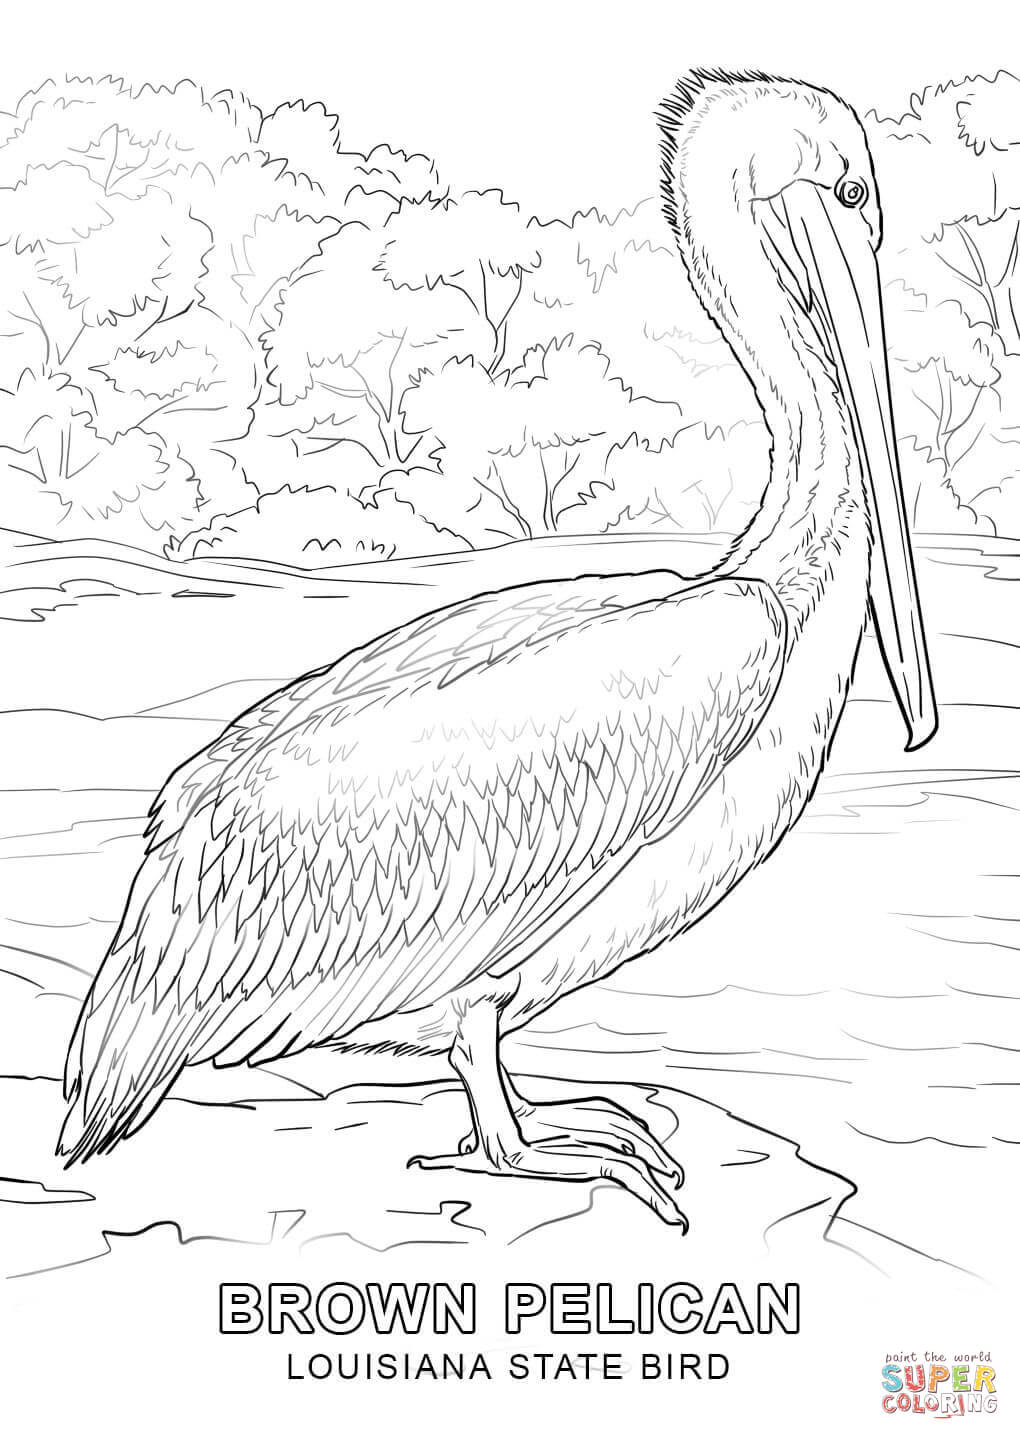 louisiana state symbols coloring pages louisiana state symbols coloring pages coloring home symbols louisiana state pages coloring